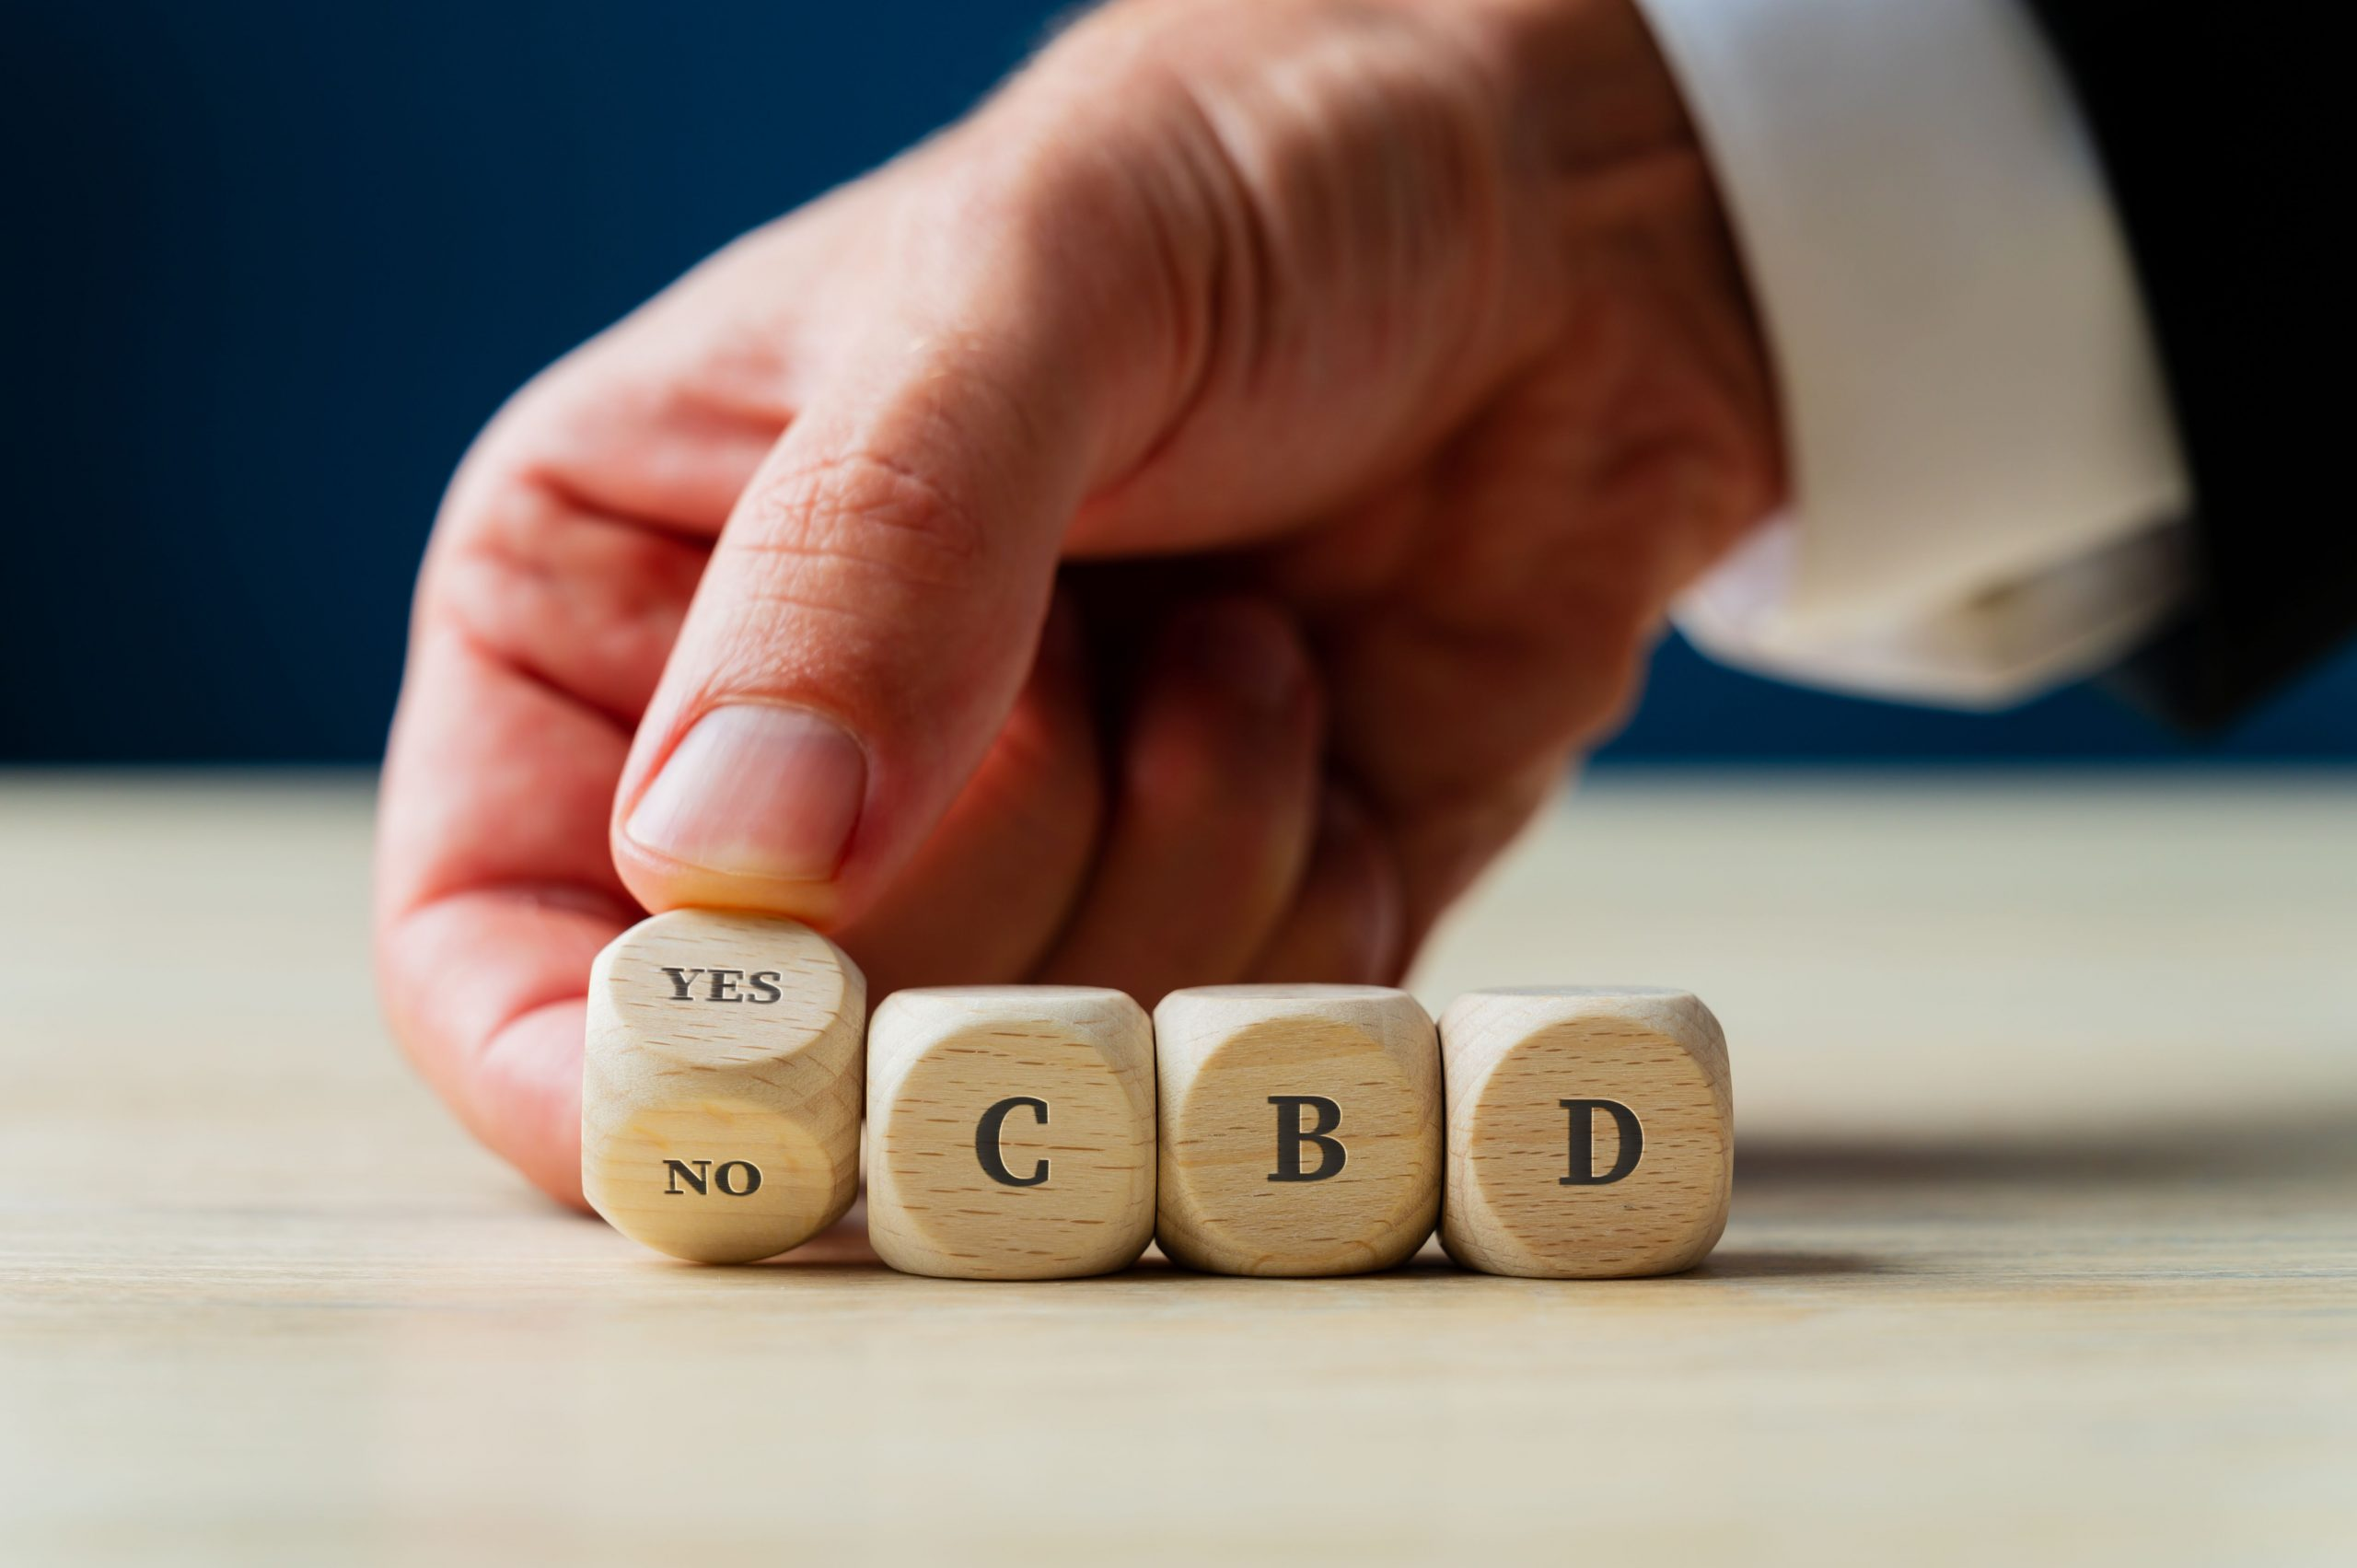 wooden dice spelling out CBD